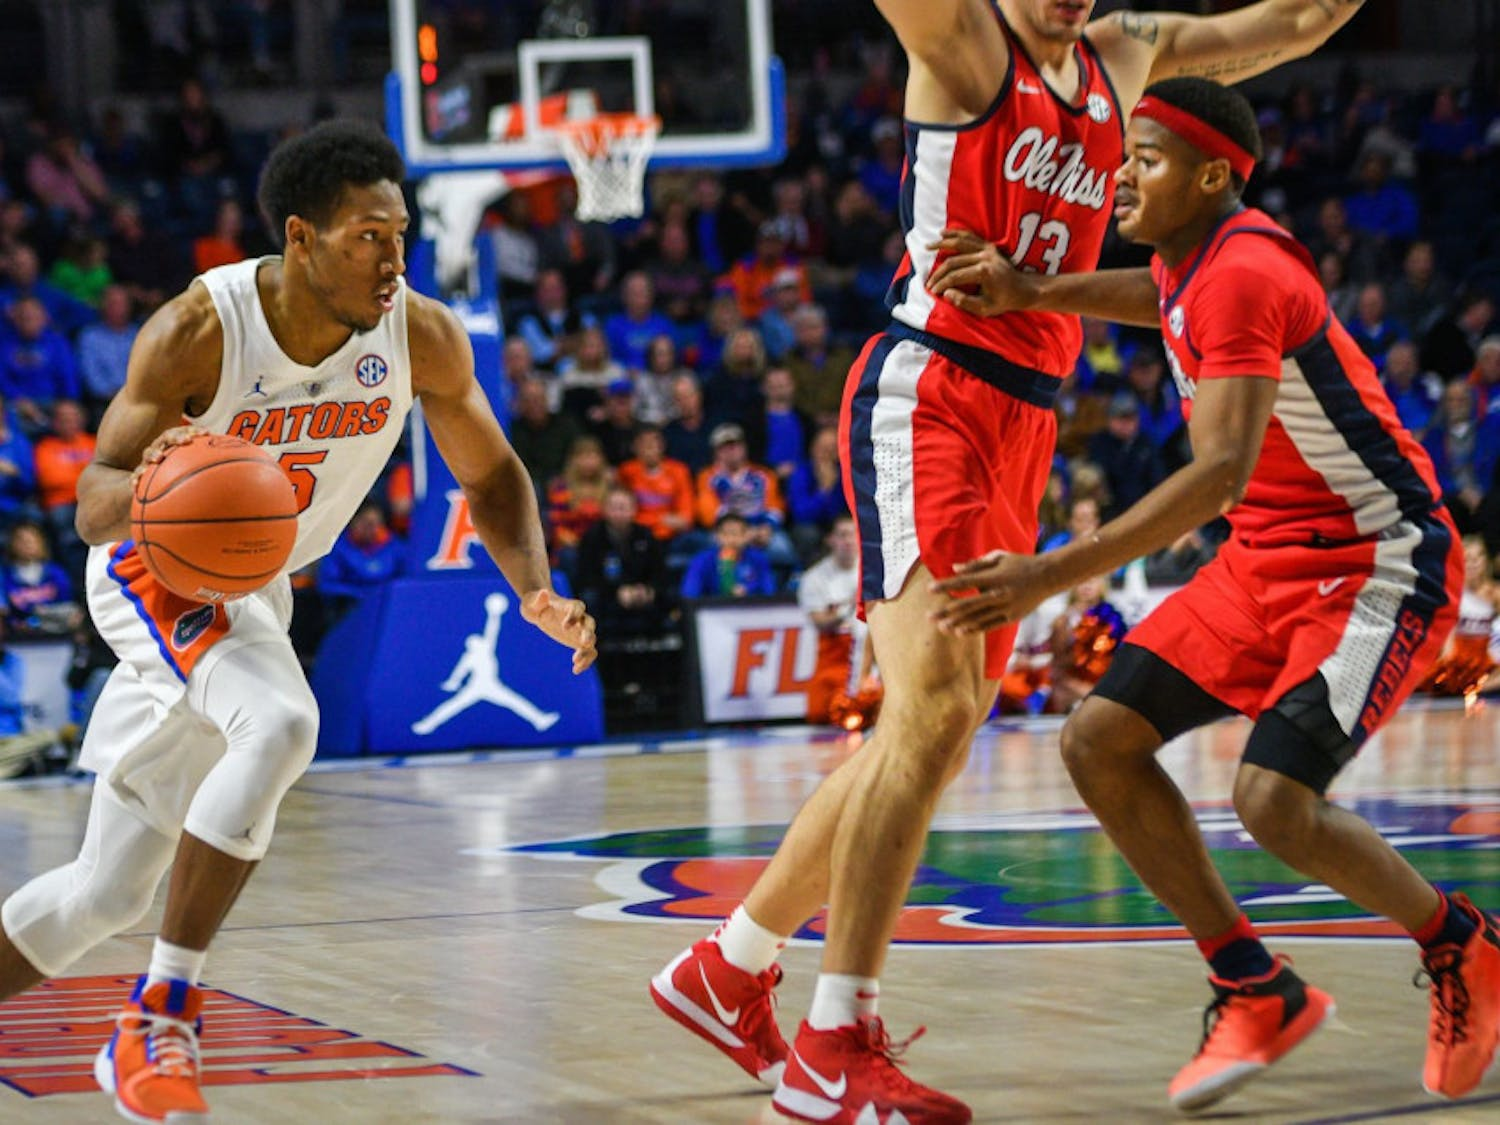 Senior guard KeVaughn Allen scored 17 points in the Gators 64-60 win over Missouri on Saturday.